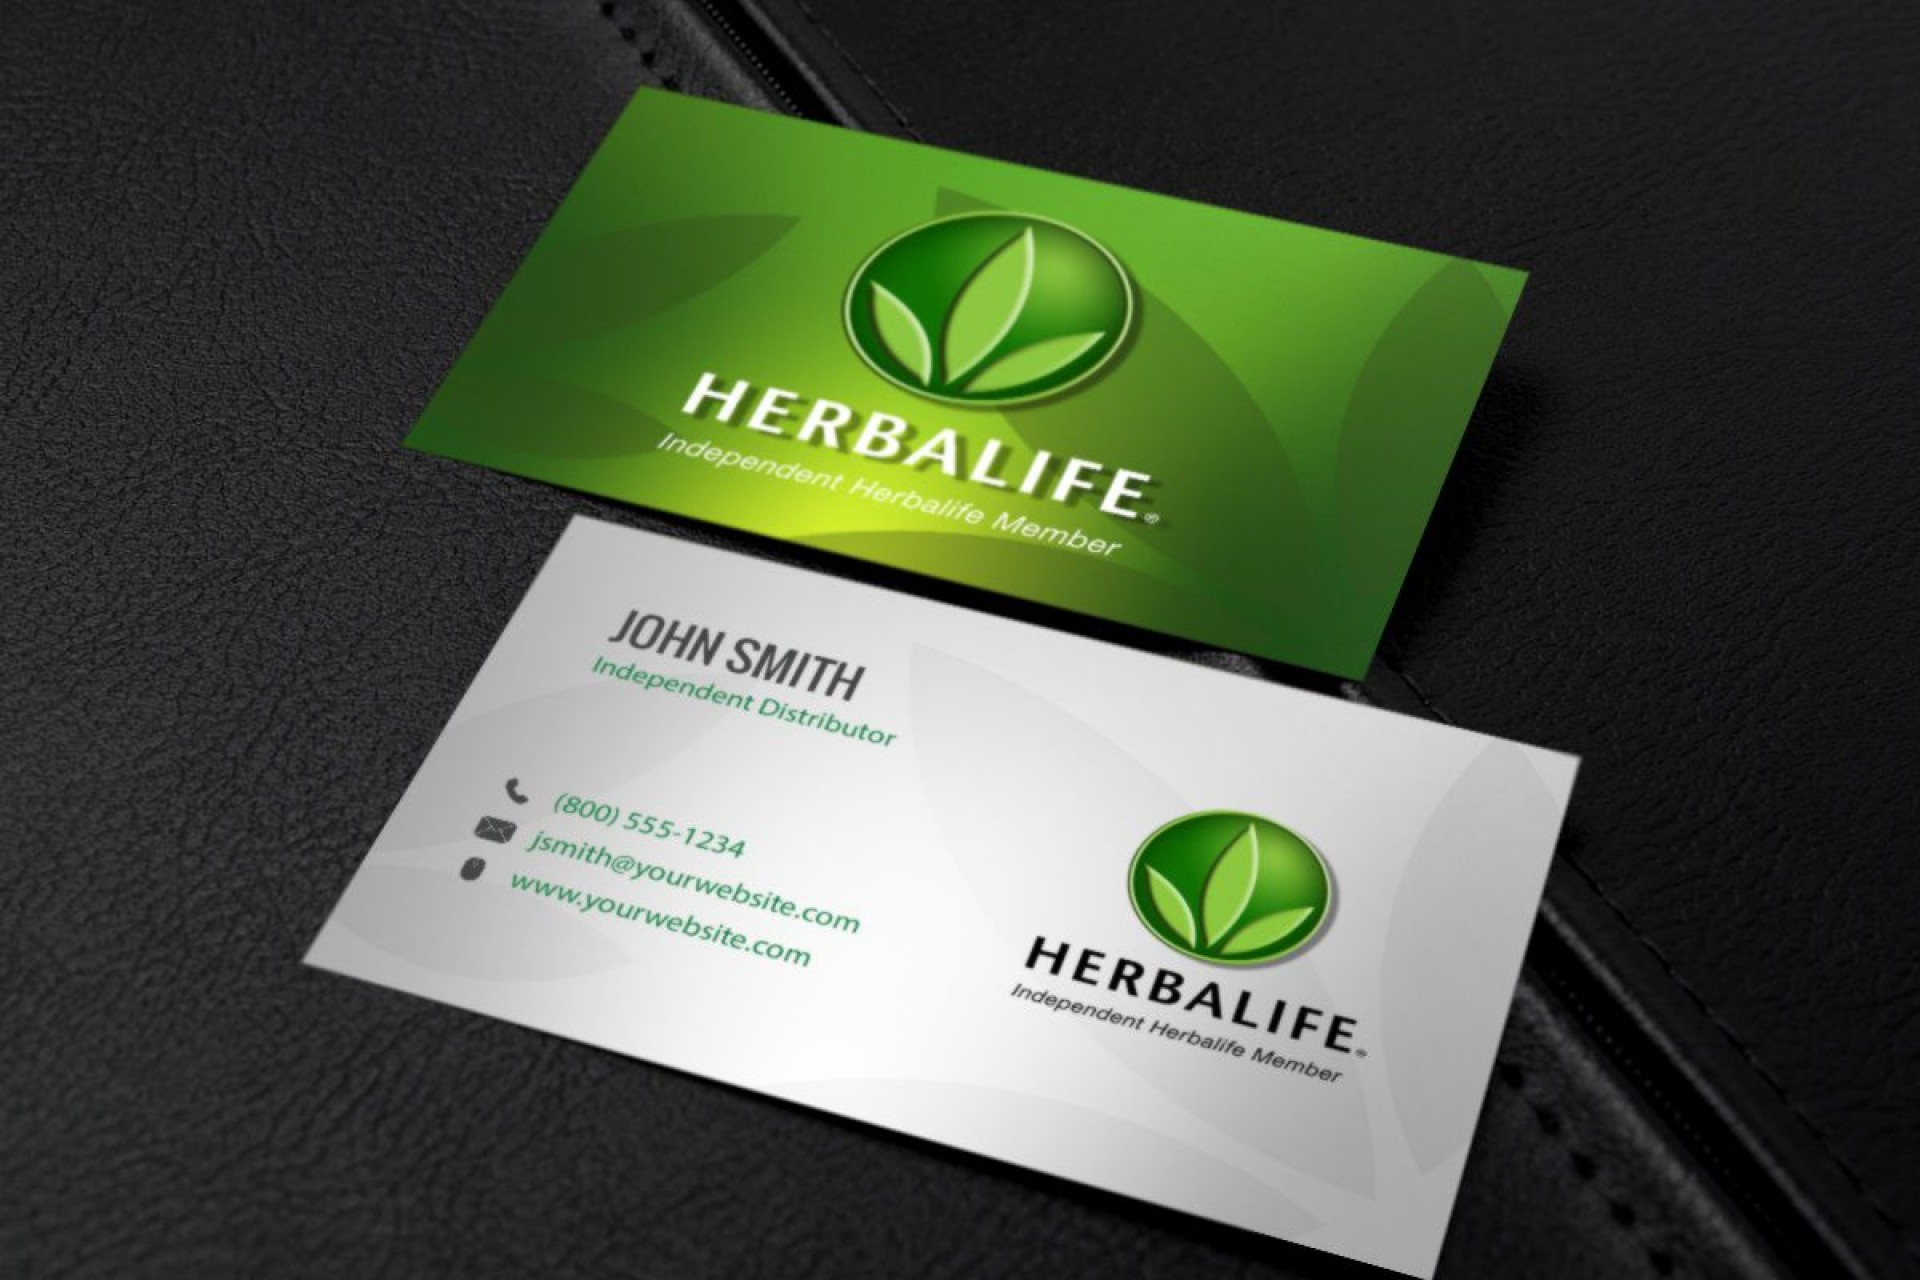 002 Dreaded Herbalife Busines Card Template Highest Clarity  Download Free1920